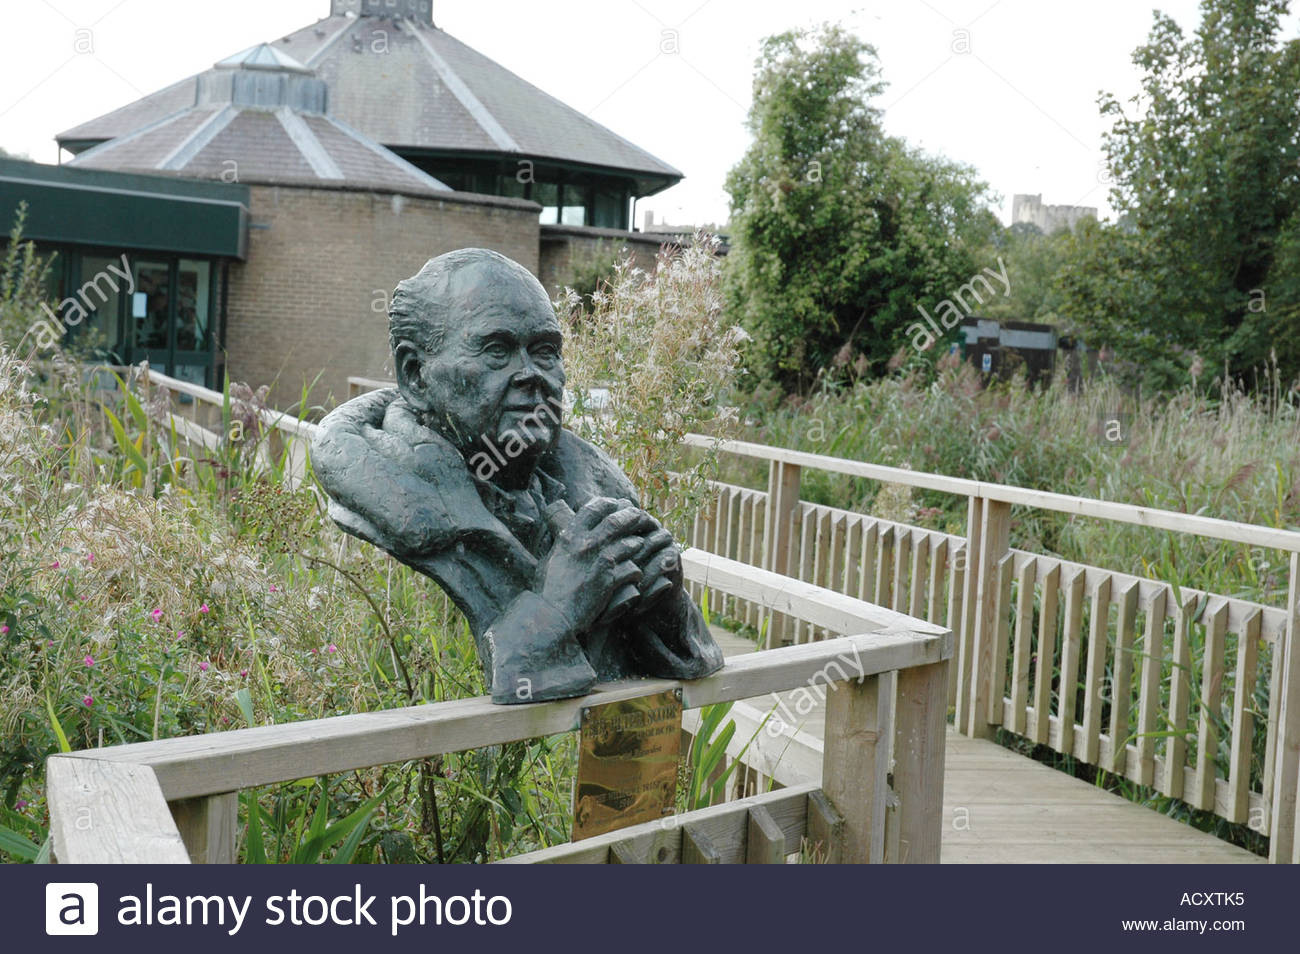 Entrance to Arundel Wildfowl and Wetlands Trust, bust of Sir Peter Scott, Arundel, West Sussex. Stock Photo